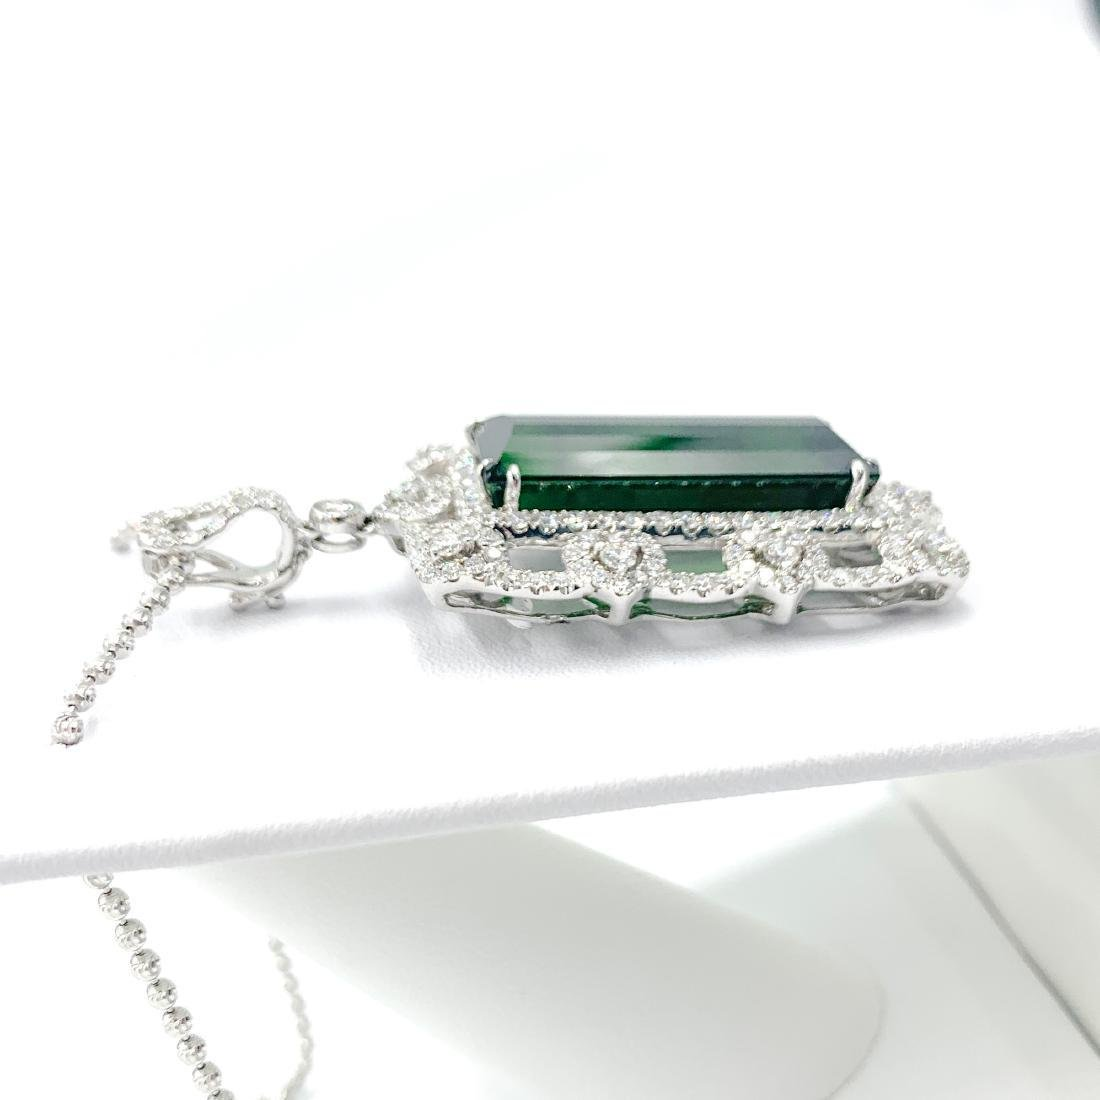 Deep Green Tourmaline Pendant - 3